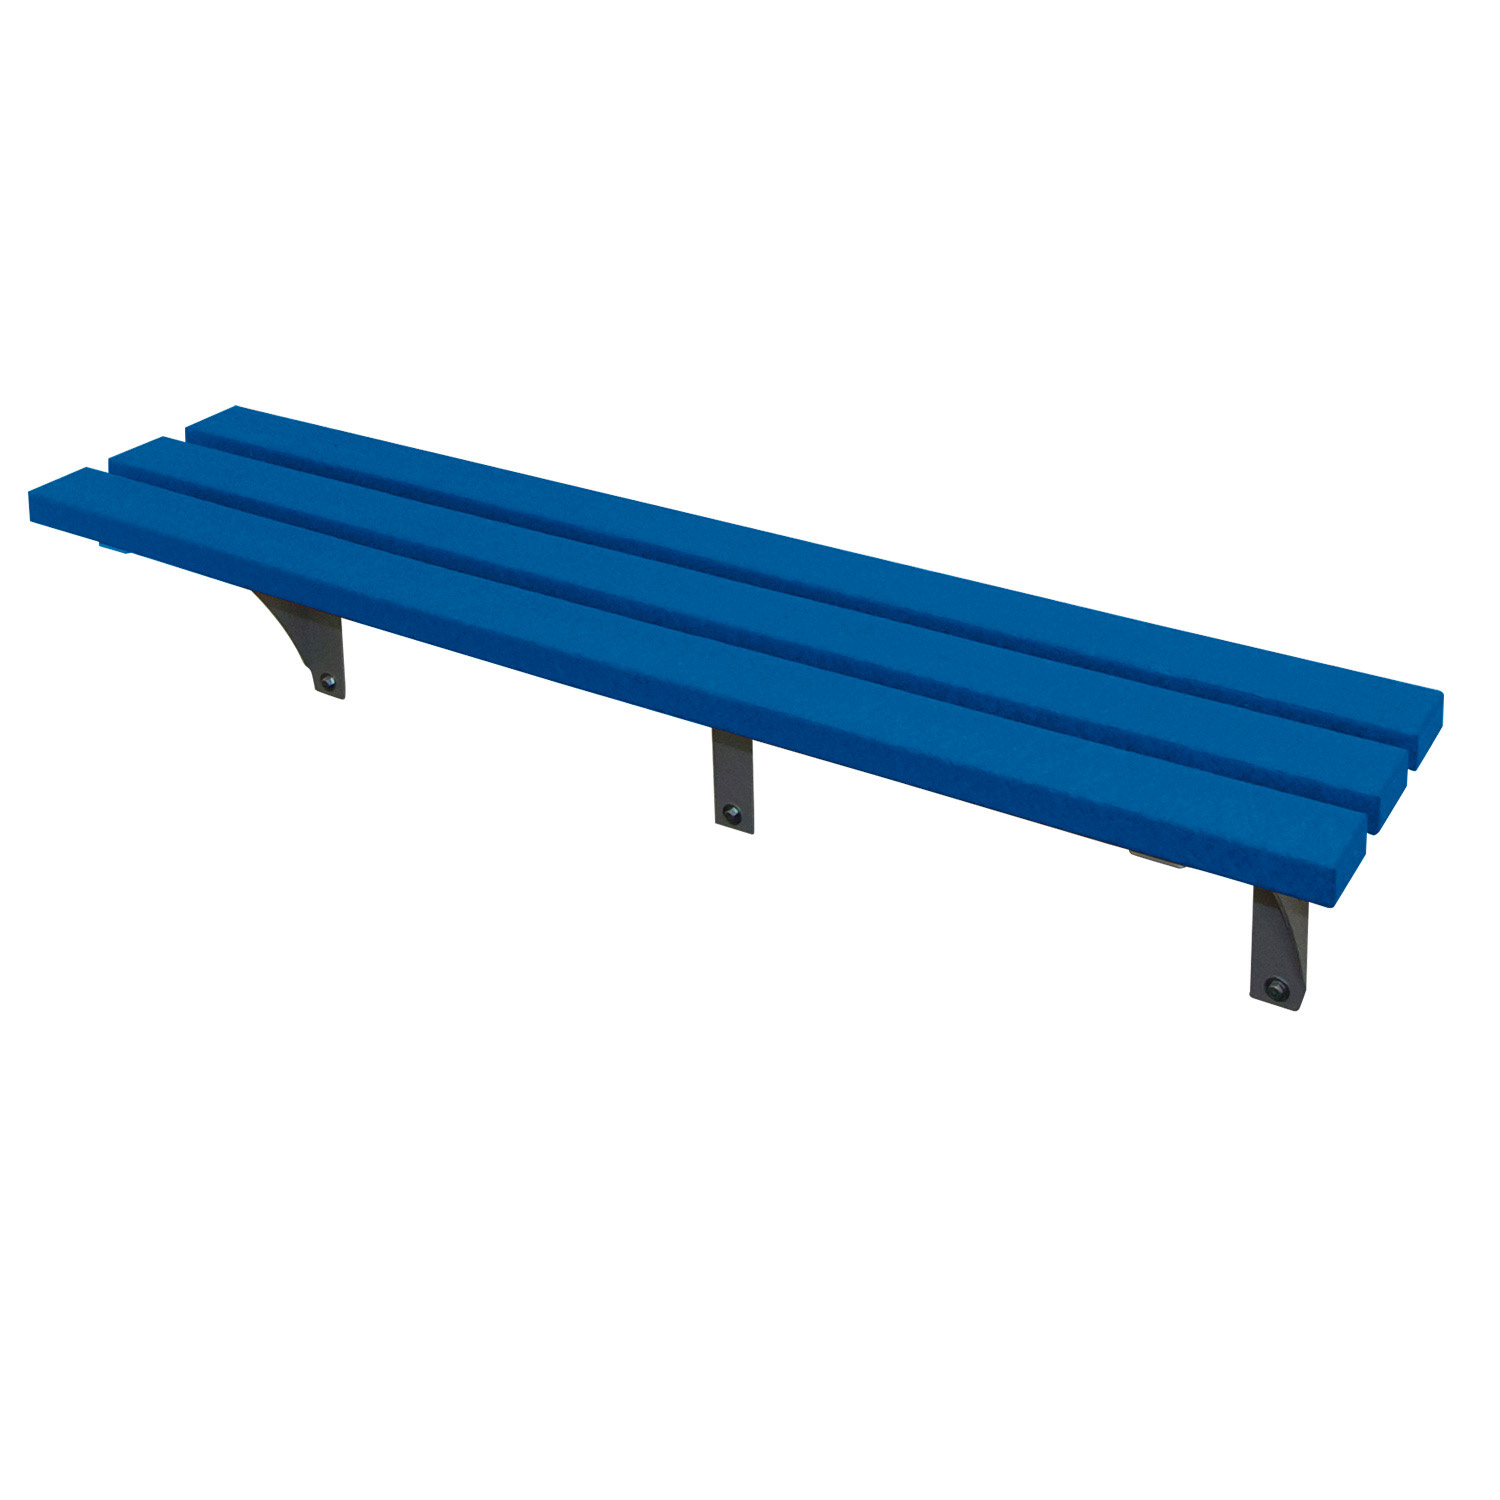 636638016823306878_blue-bench-web.jpg